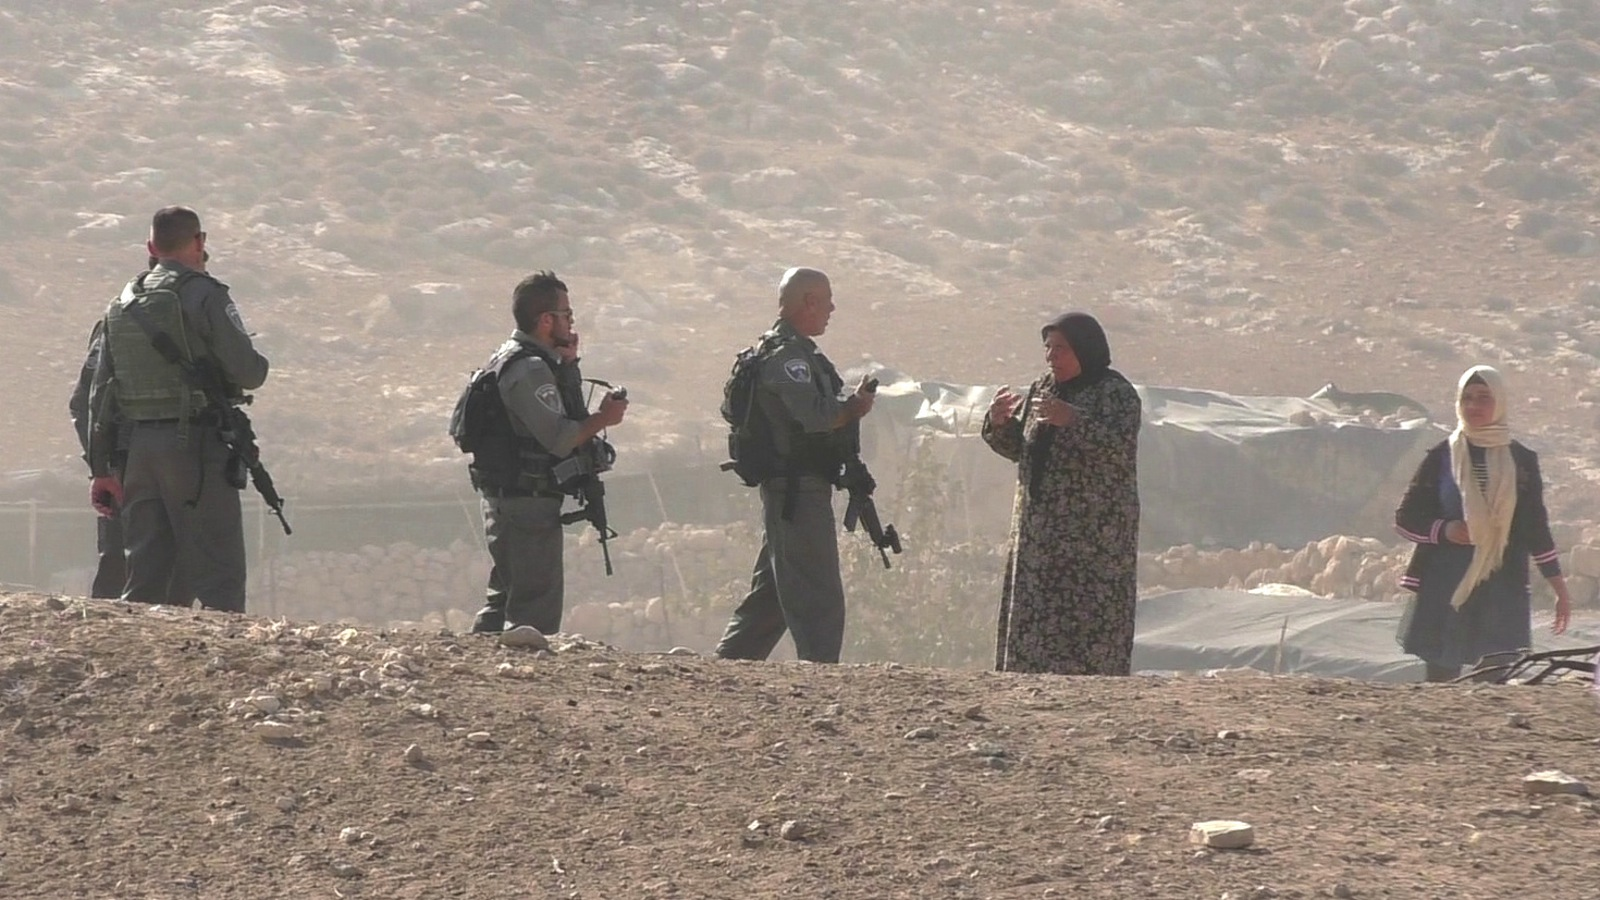 Palestinian woman asks the reason of the raid to Israeli Border policemen